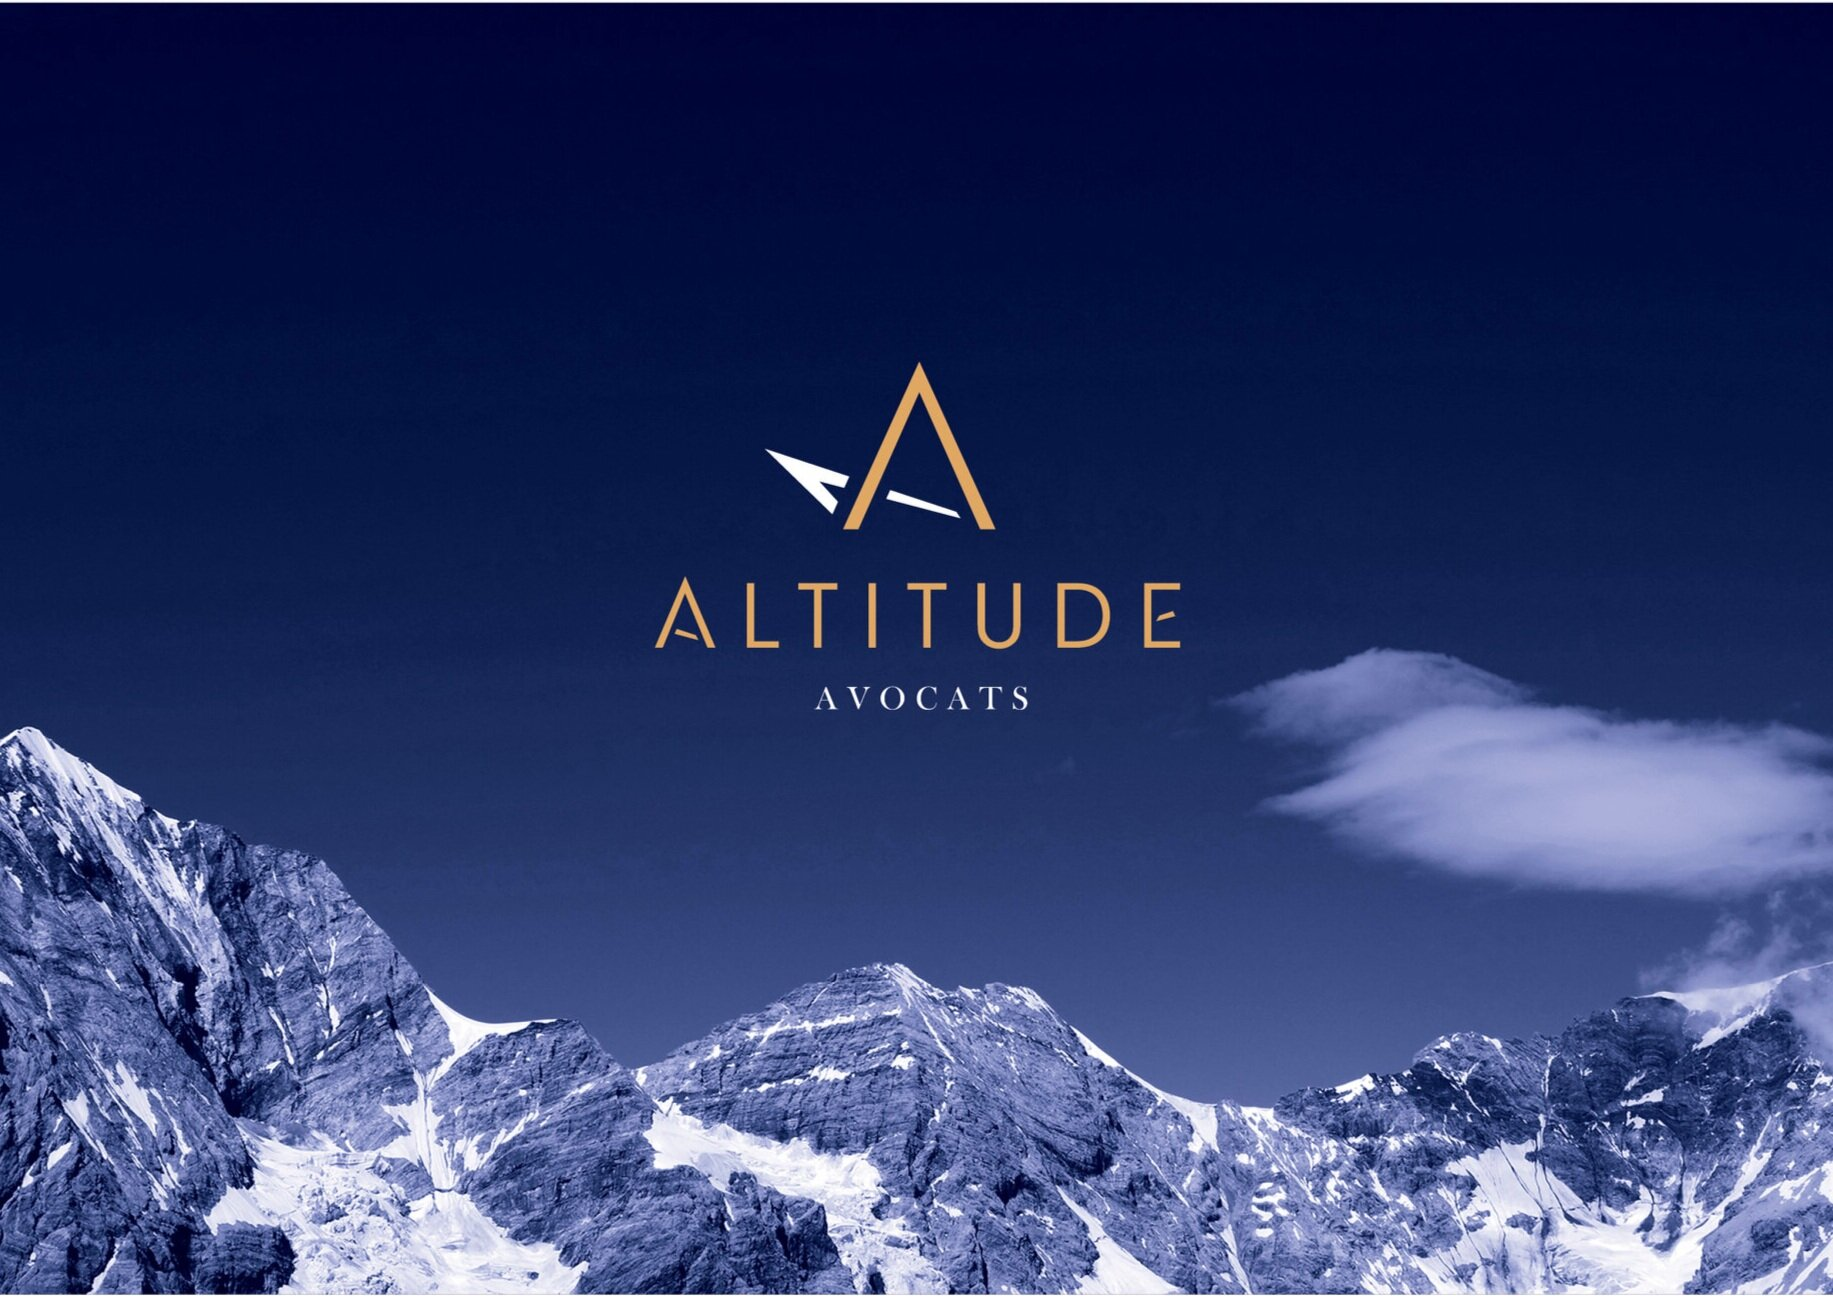 Planches-Altitude2.jpg